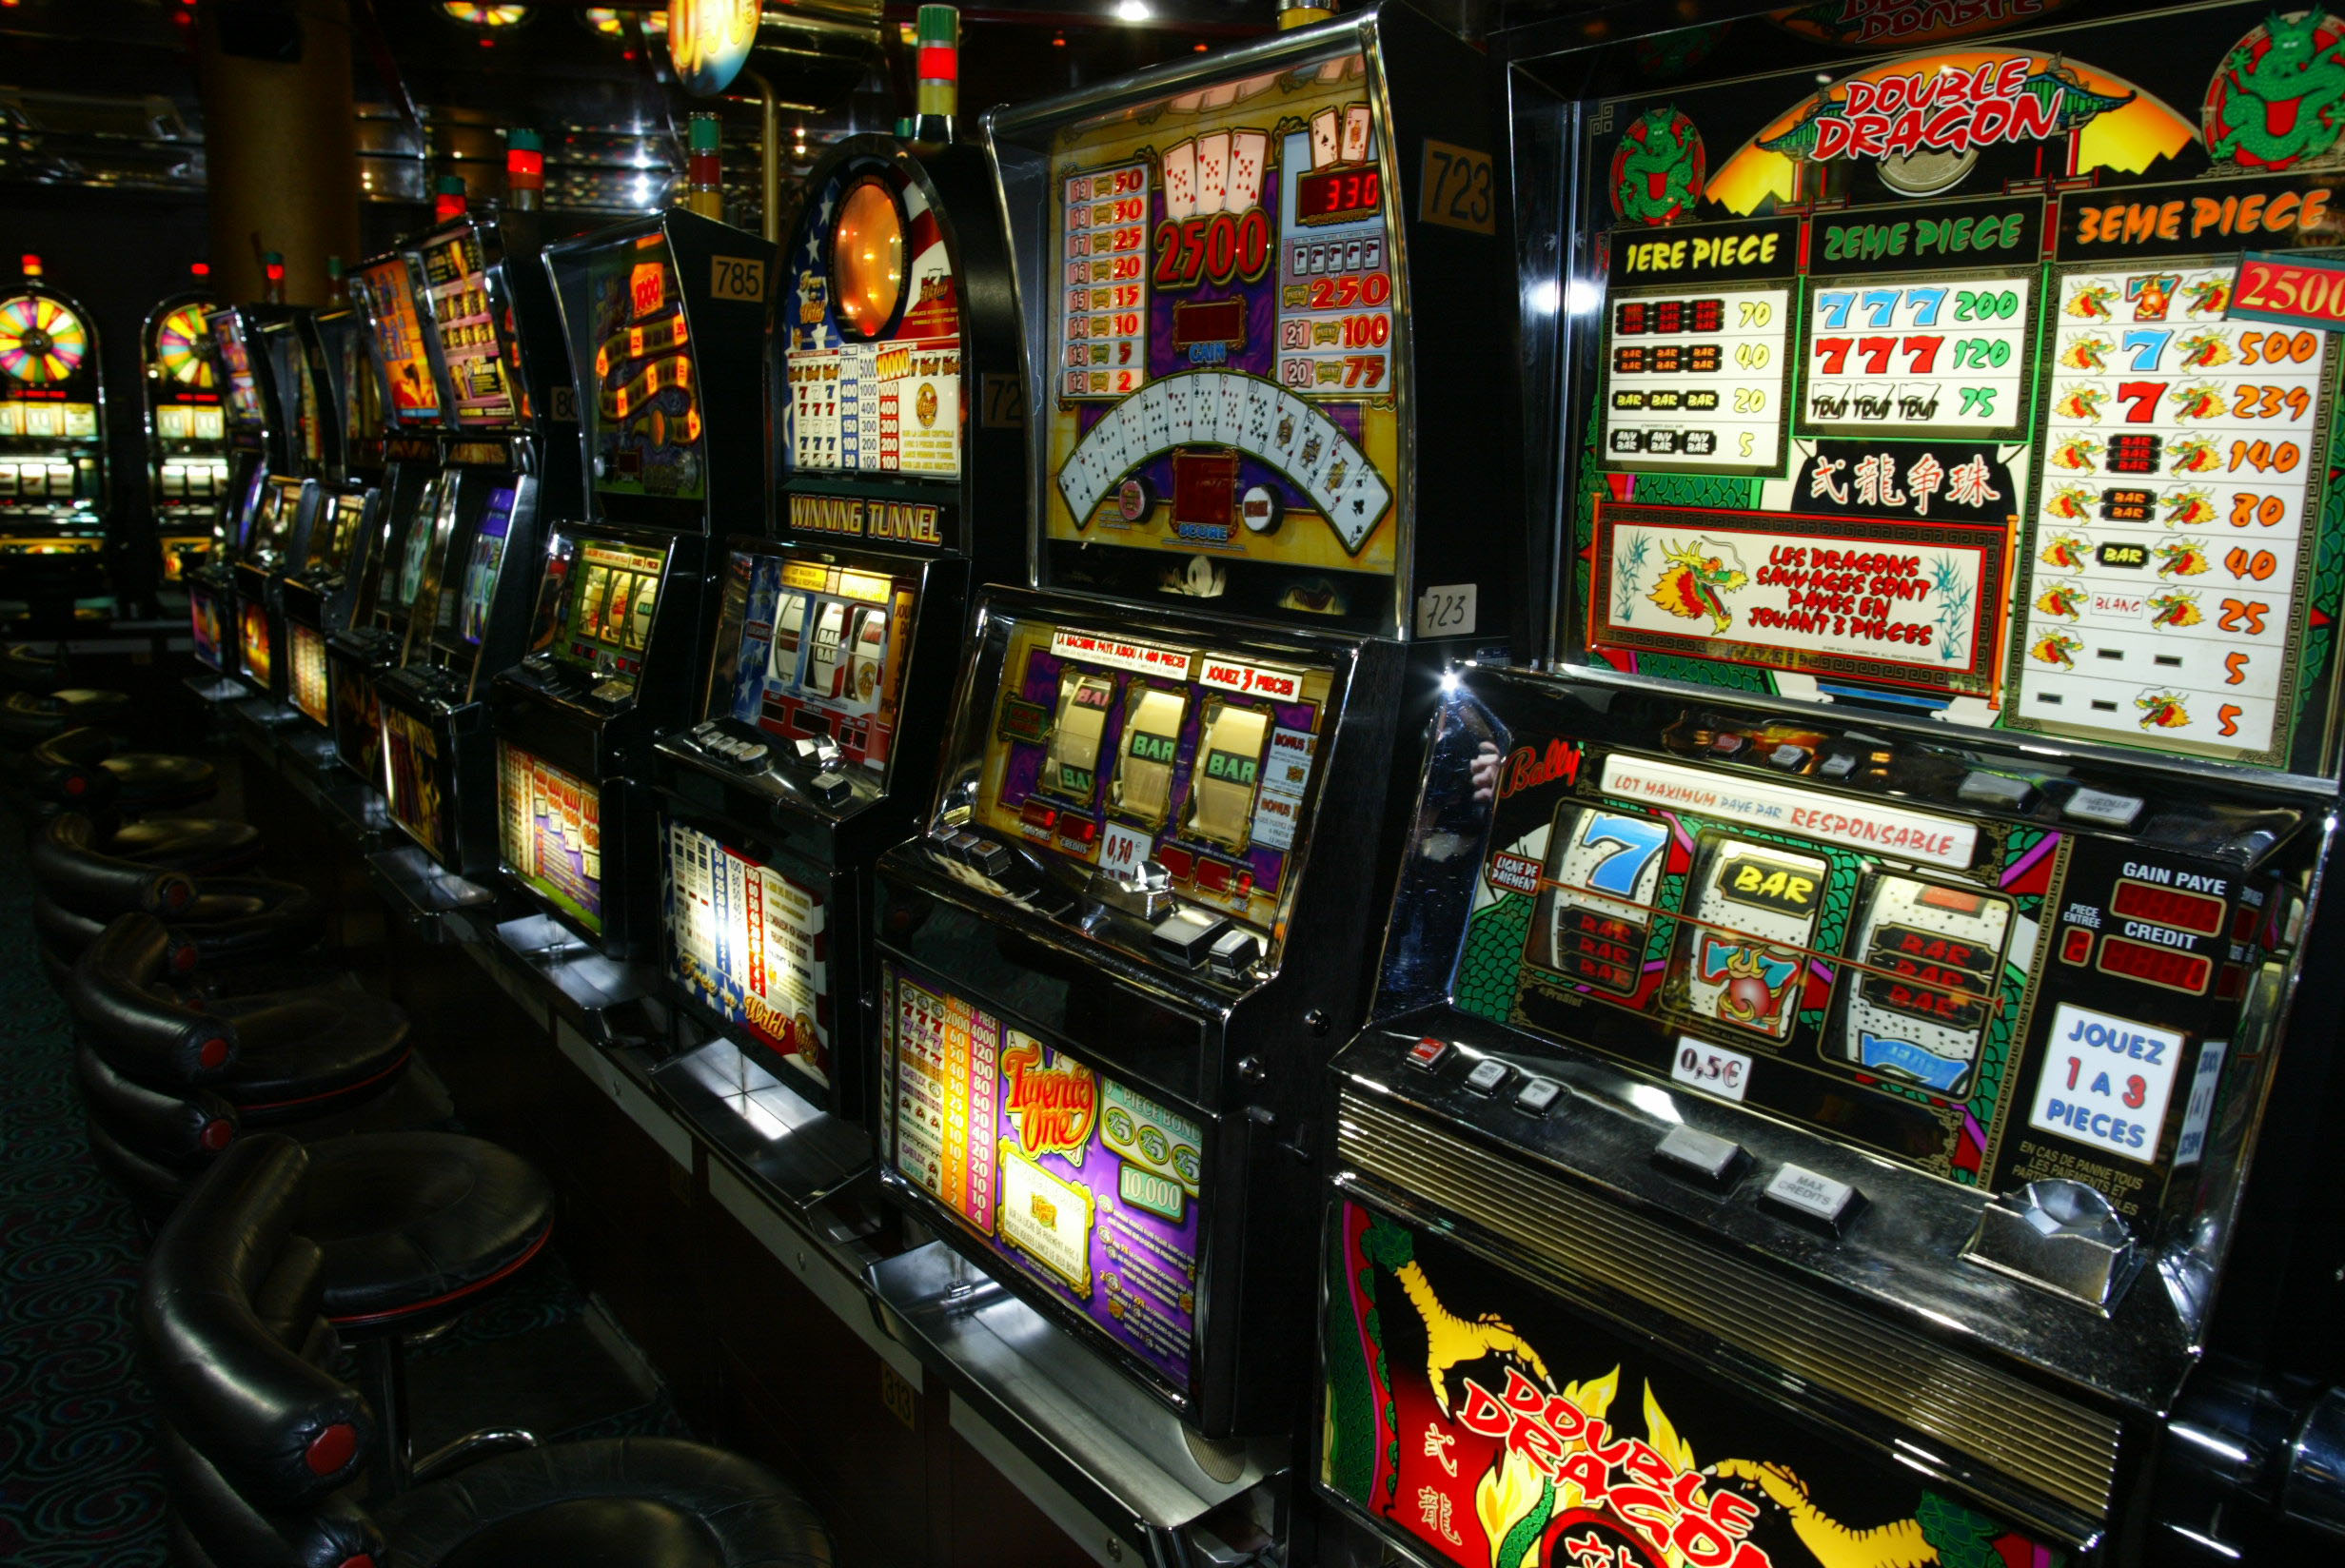 When a person has to check their luck or gambling capability, slots are the wonderful option.